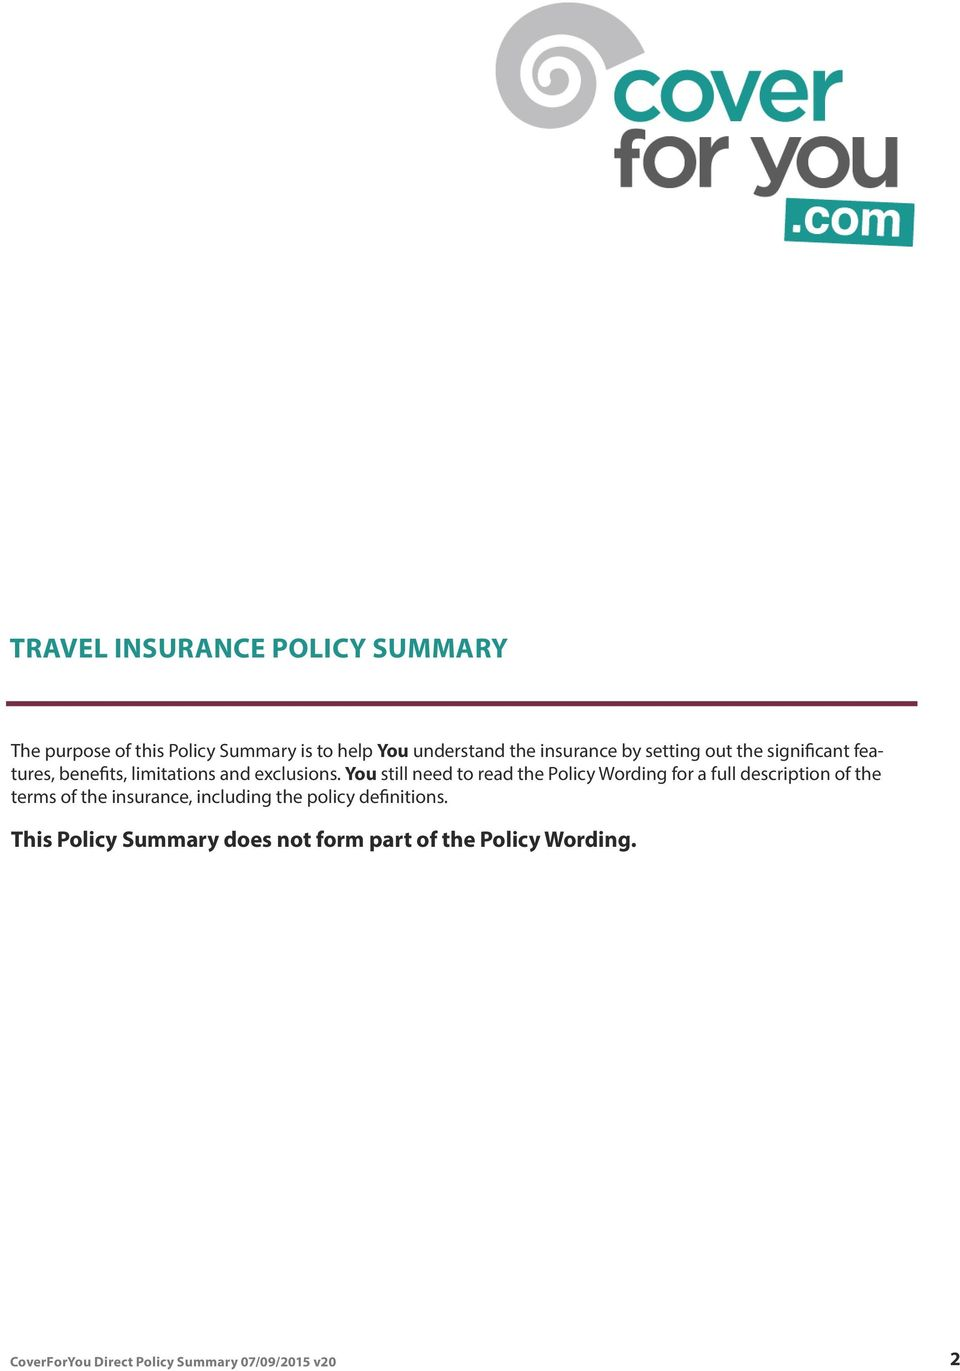 You still need to read the Policy Wording for a full description of the terms of the